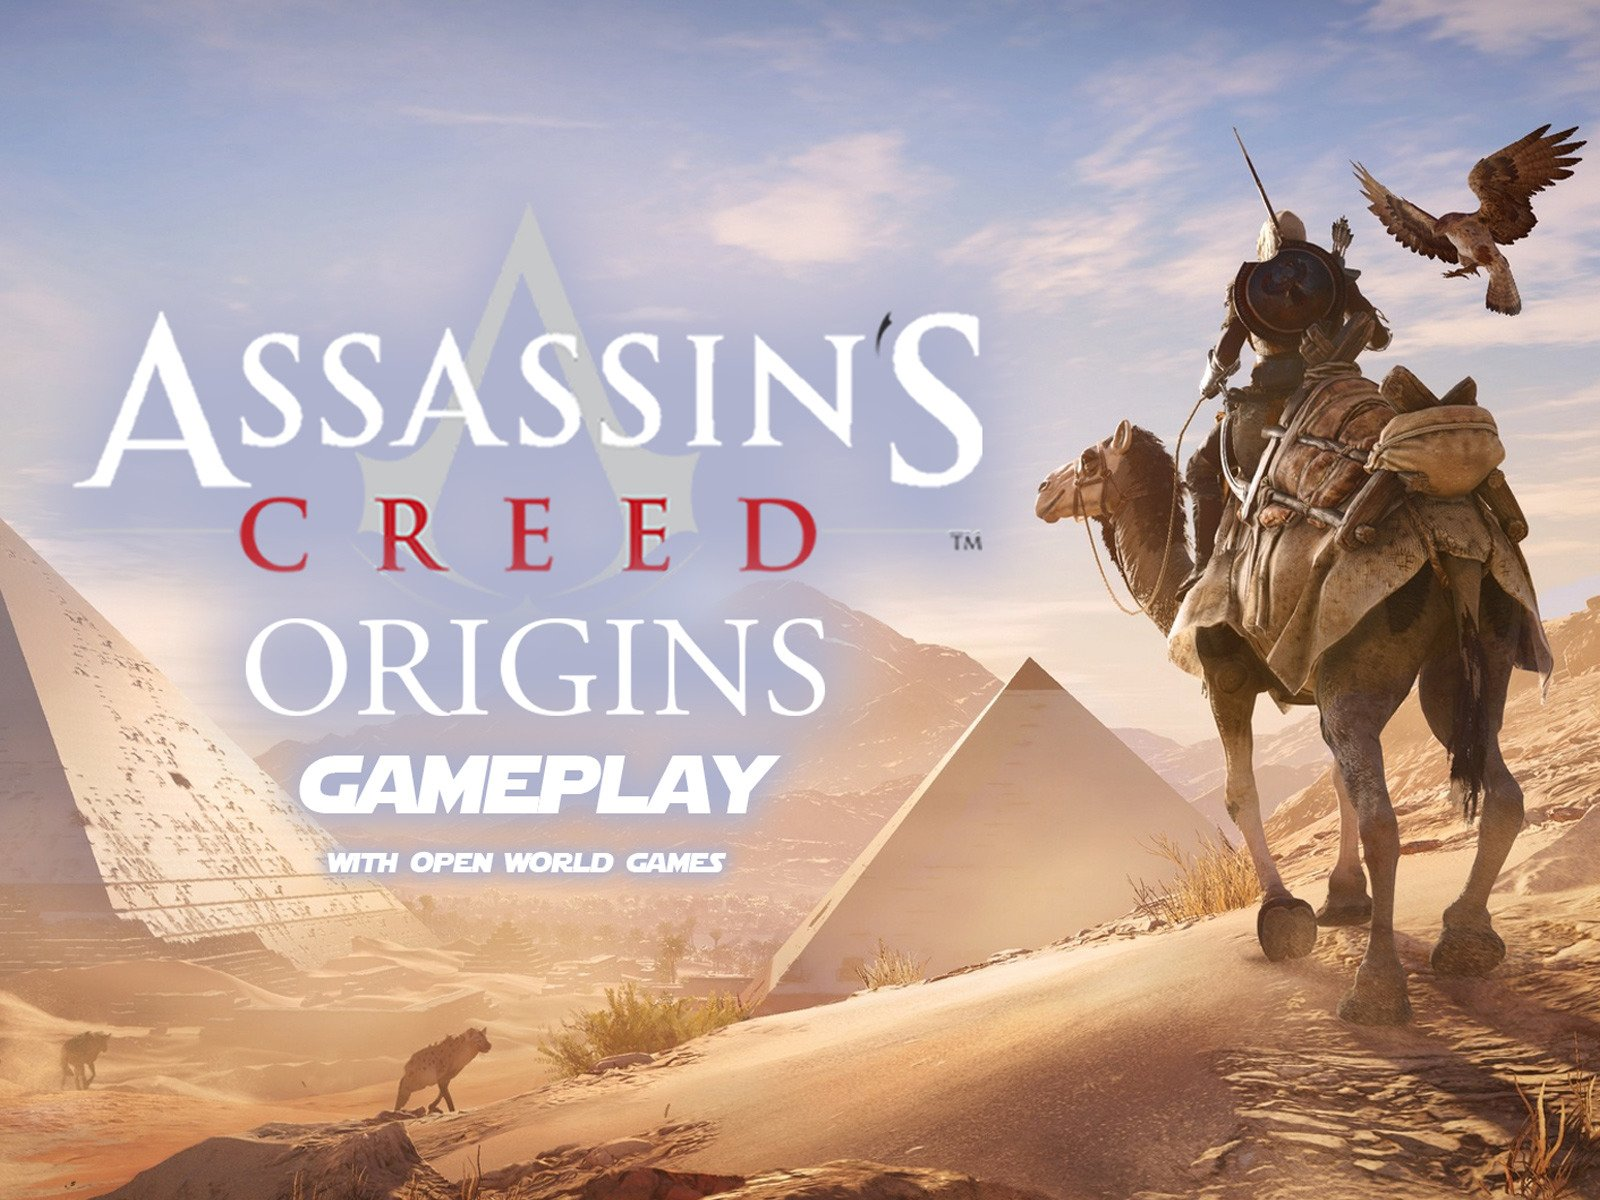 Assassin's Creed Origins Gameplay with Open World Games - Season 1